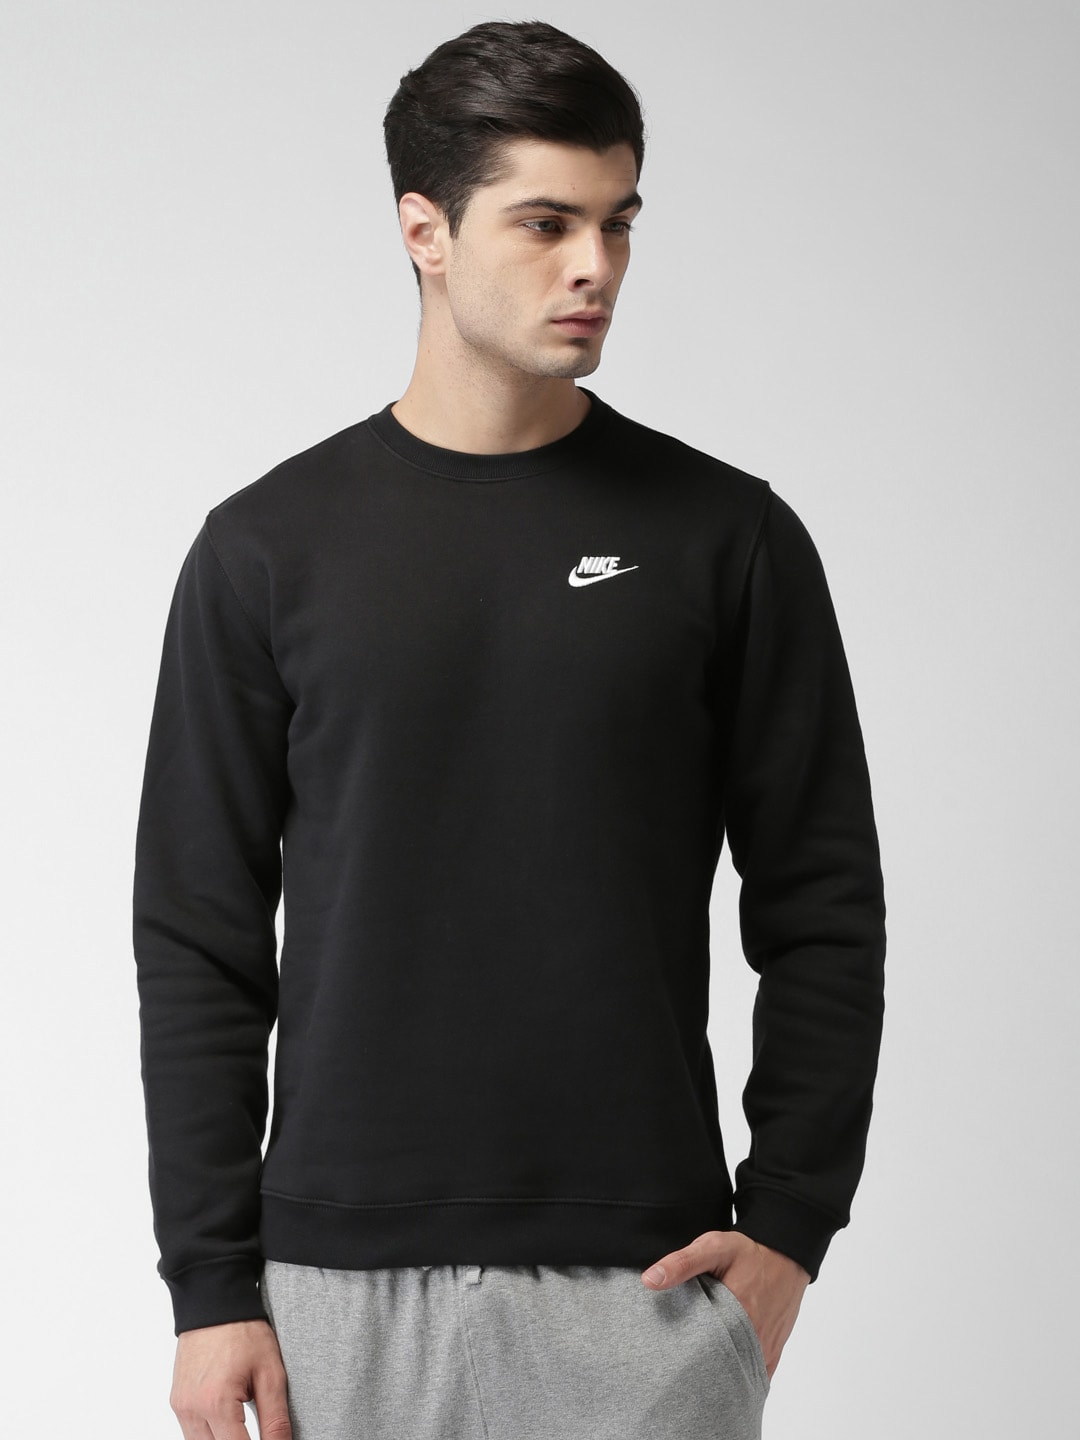 Buy Nike NSW CRW FLC CLUB Black Solid Men's Sweatshirt At Best Price